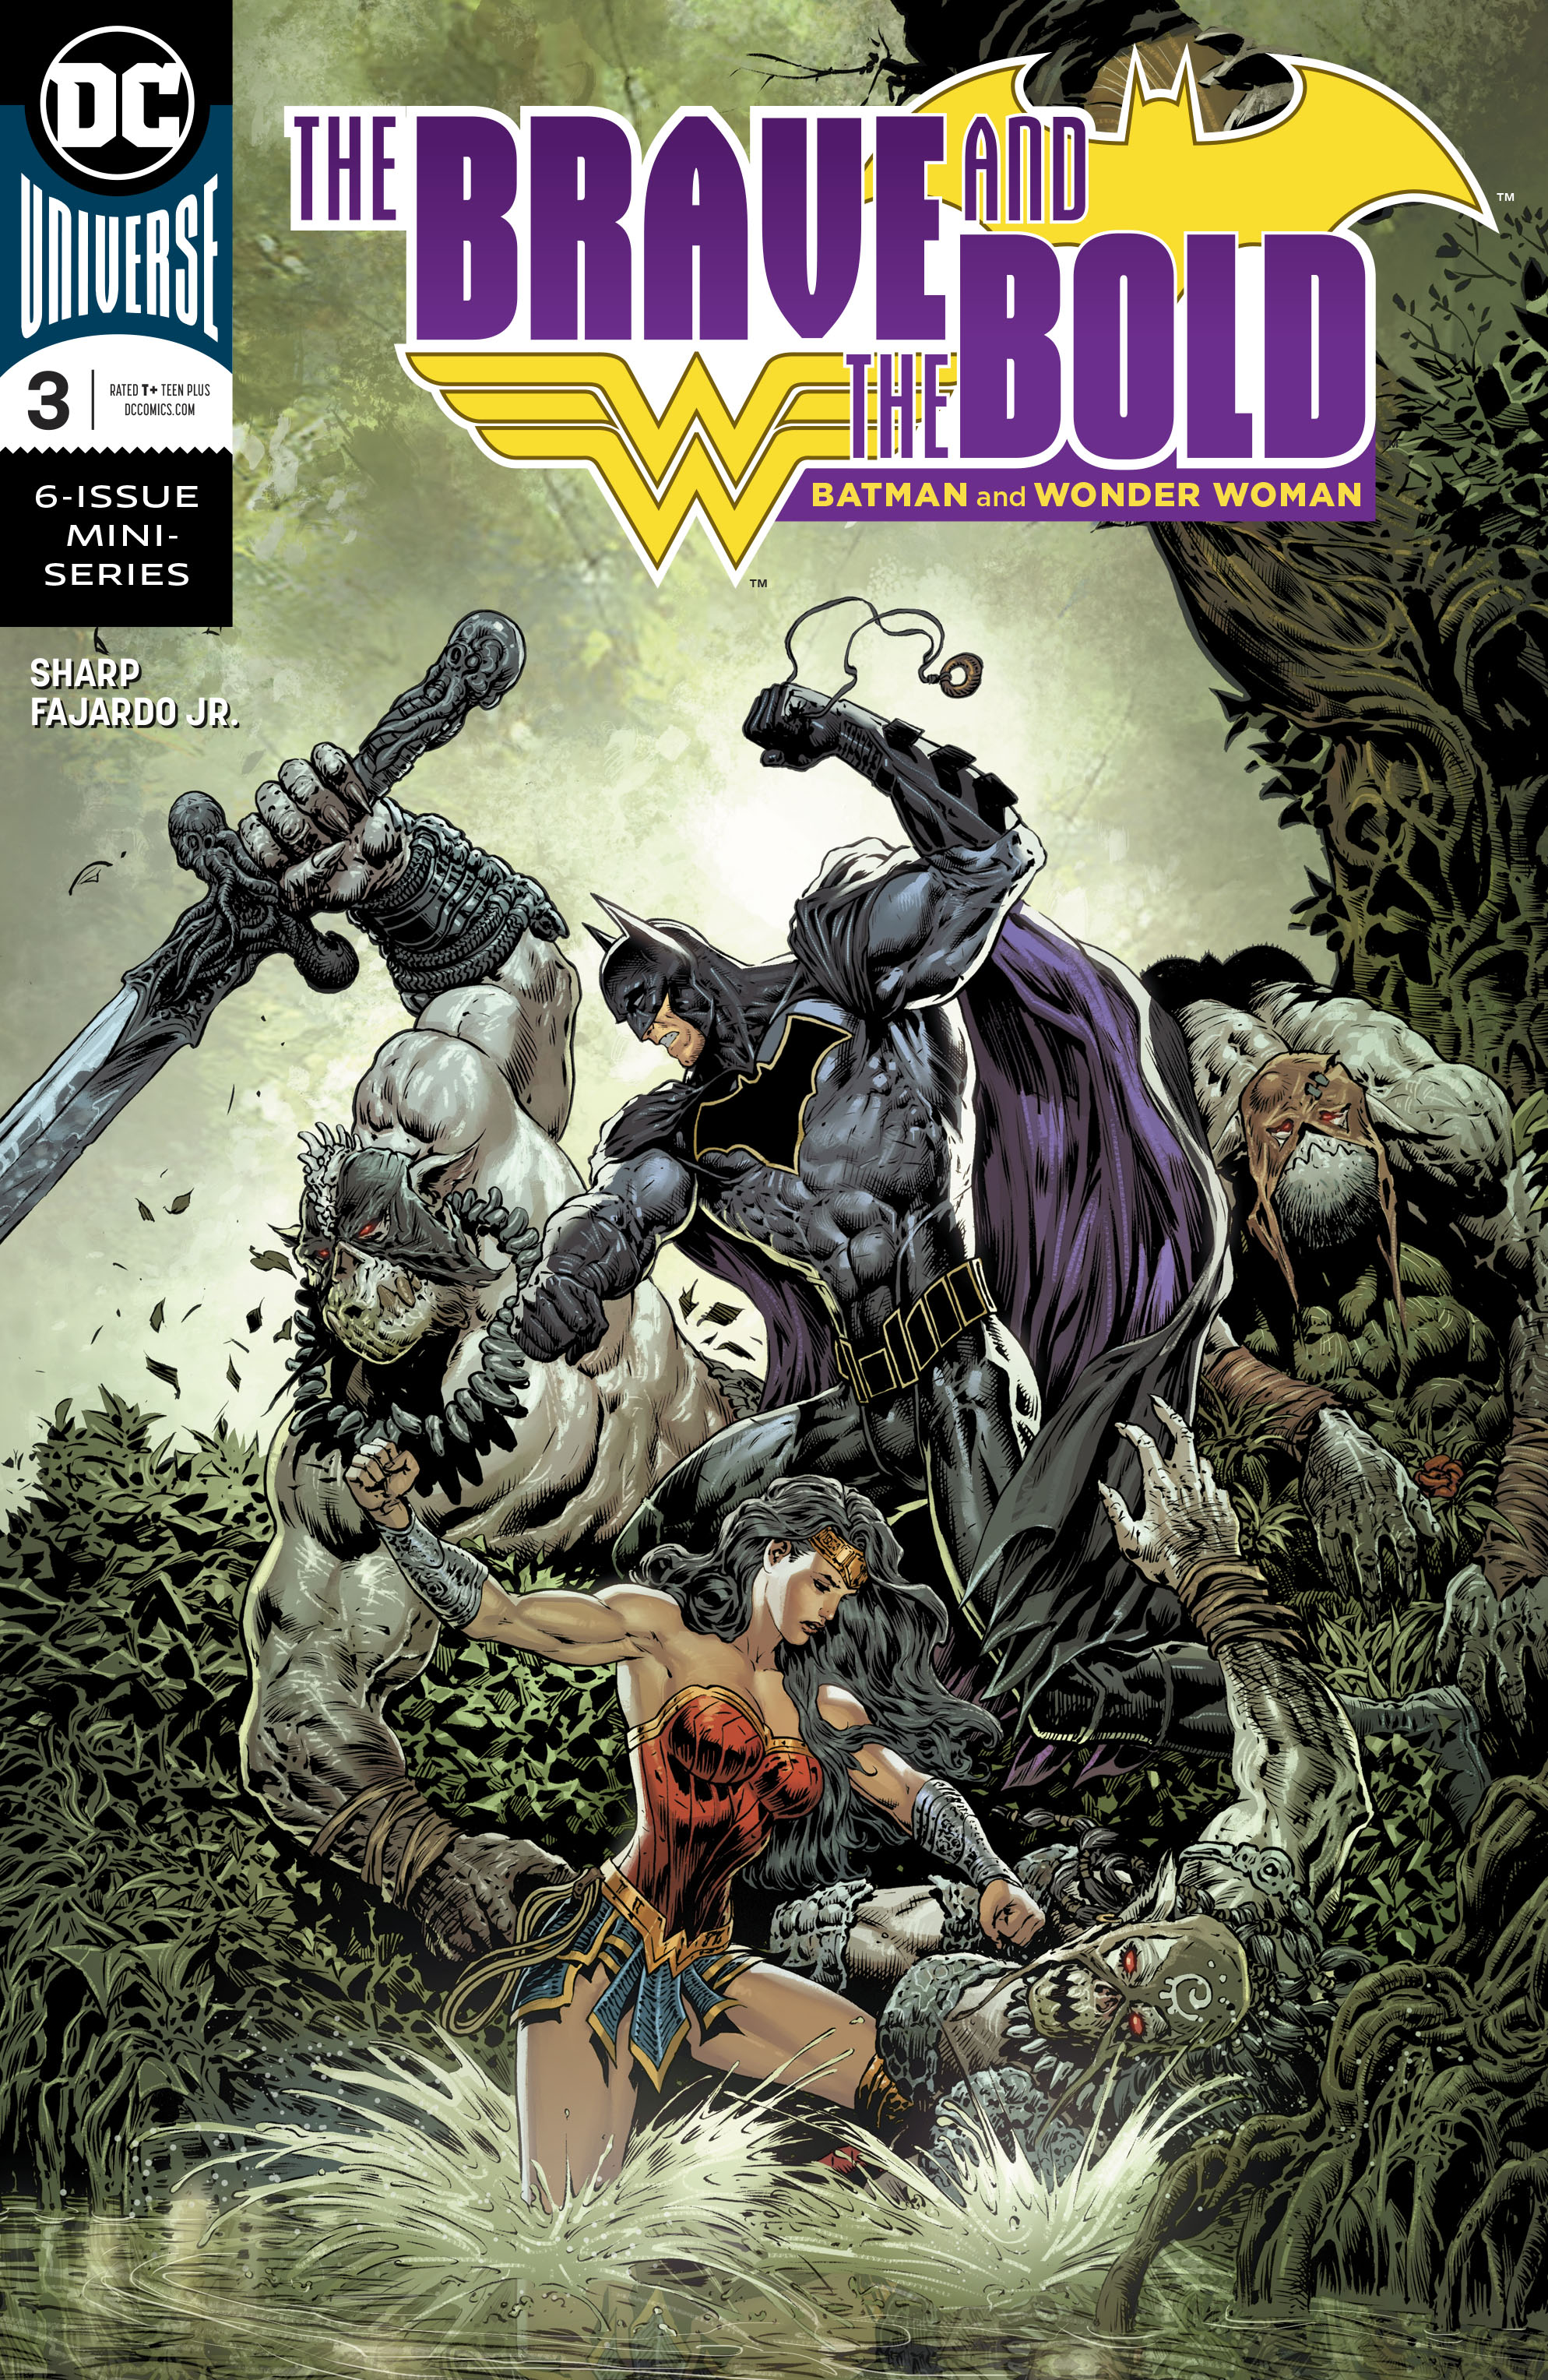 BRAVE & THE BOLD BATMAN & WONDER WOMAN #3 (OF 6)